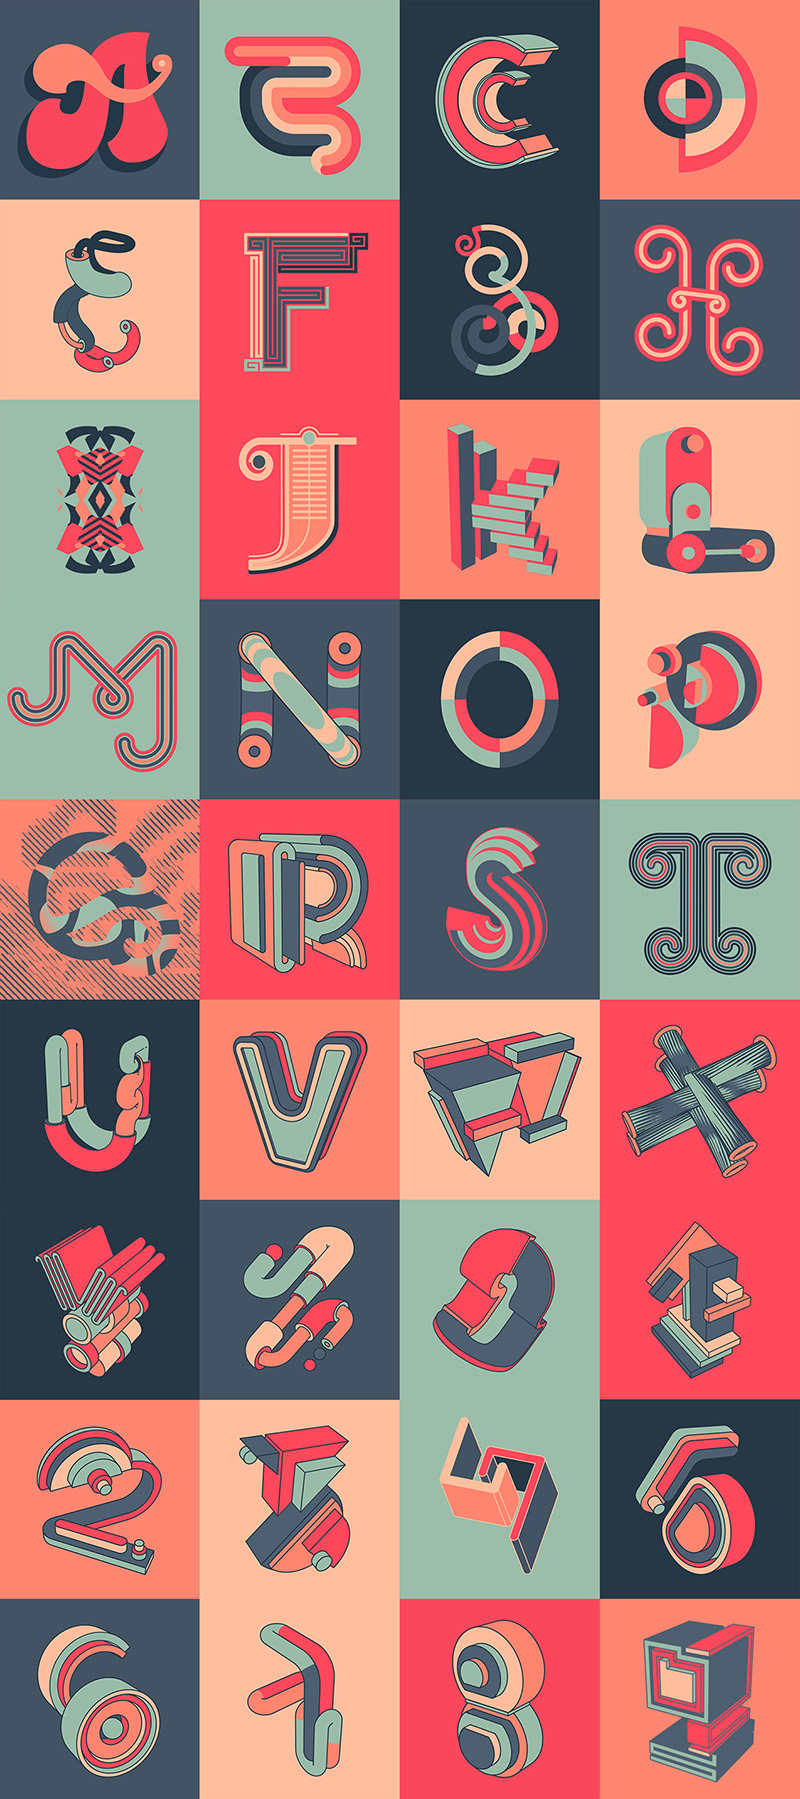 Speakloop Typography Project